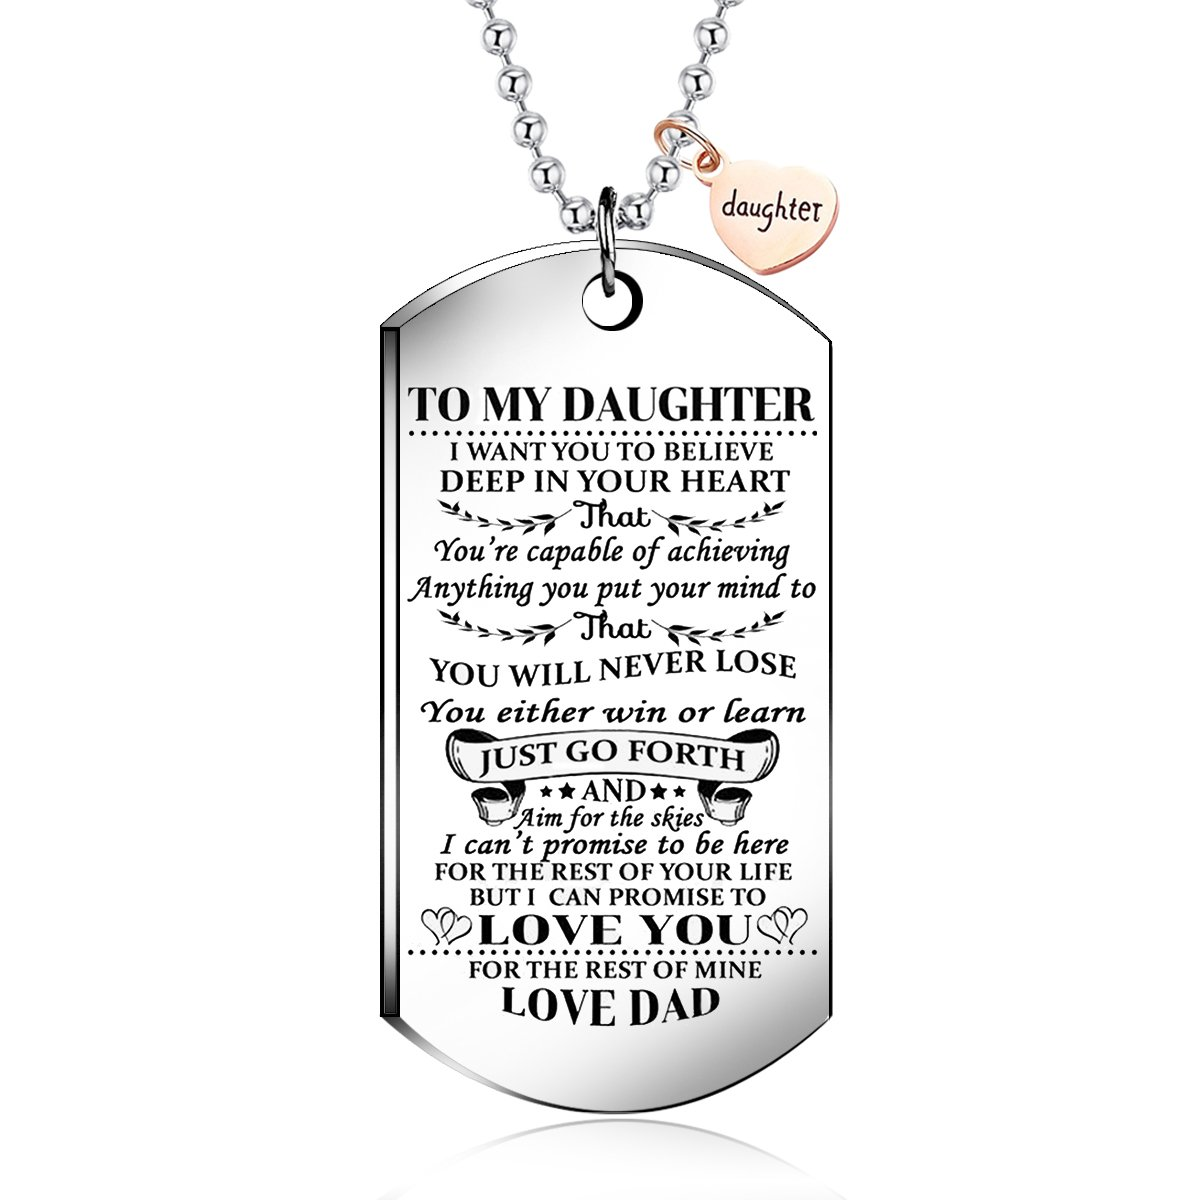 NOVLOVE To My daughter from dad I Want You To Believe Love dad Dog Tag Military Air Force Navy Coast Guard Necklace Ball Chain Gift for Best Son Birthday and Graduation